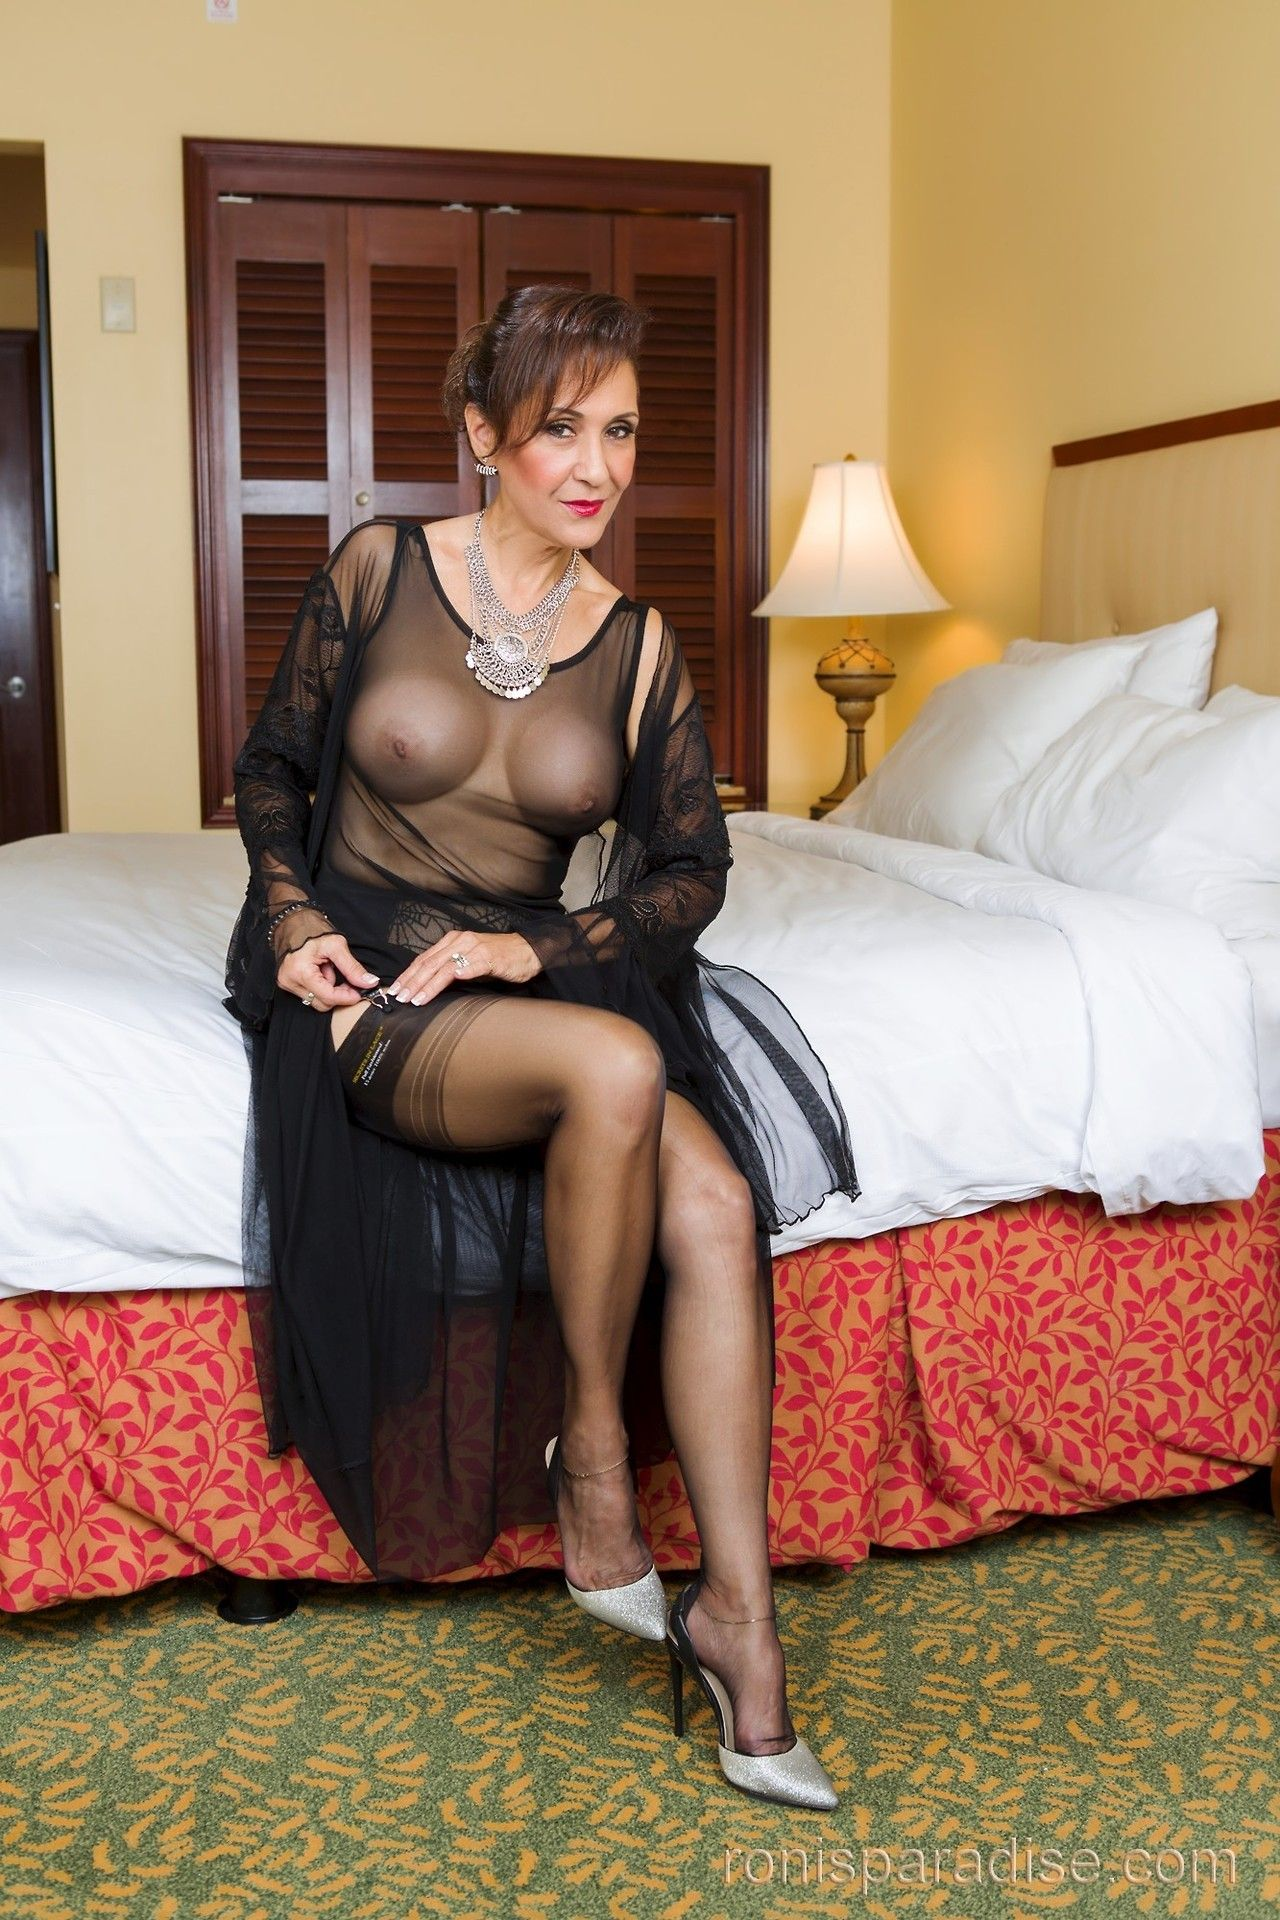 sexy stockings : photo | mature | pinterest | lovers, black